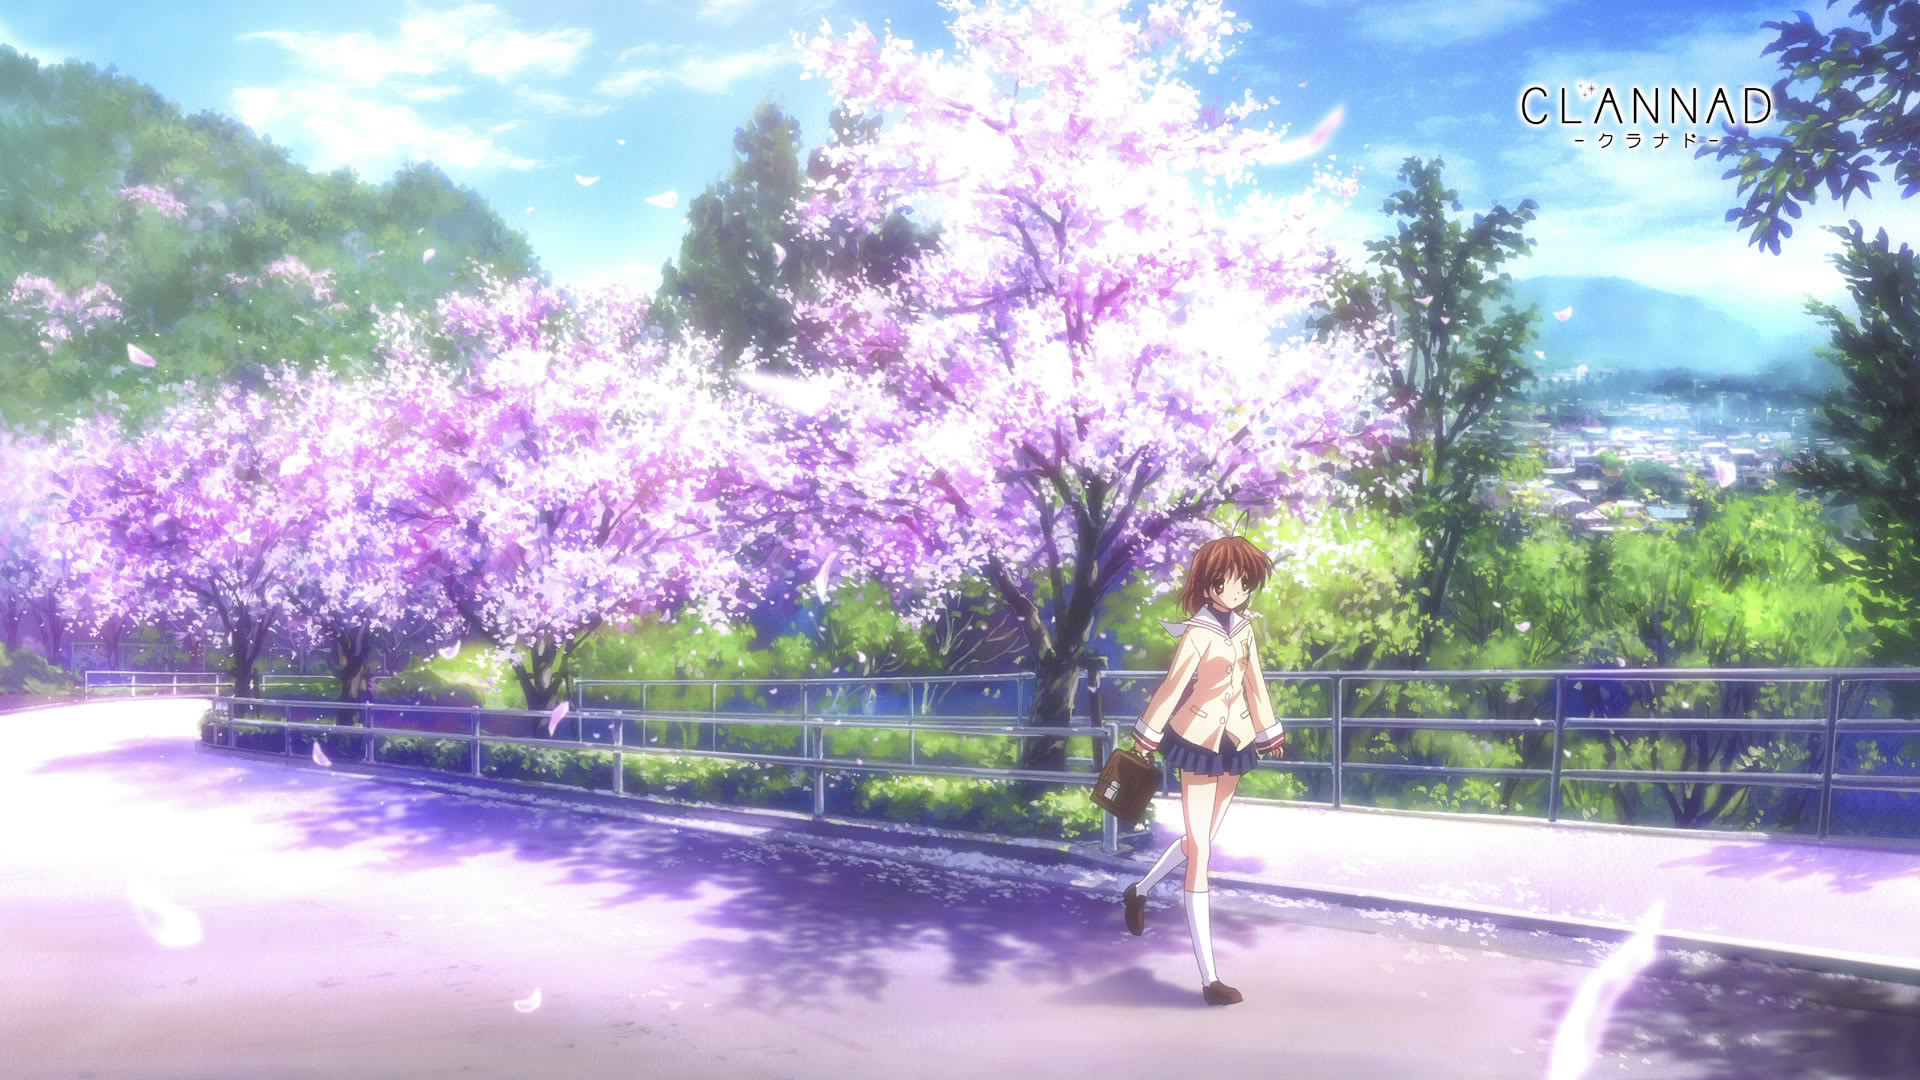 Cherry Blossoms Wallpaper Cherry, Blossoms, Clannad .